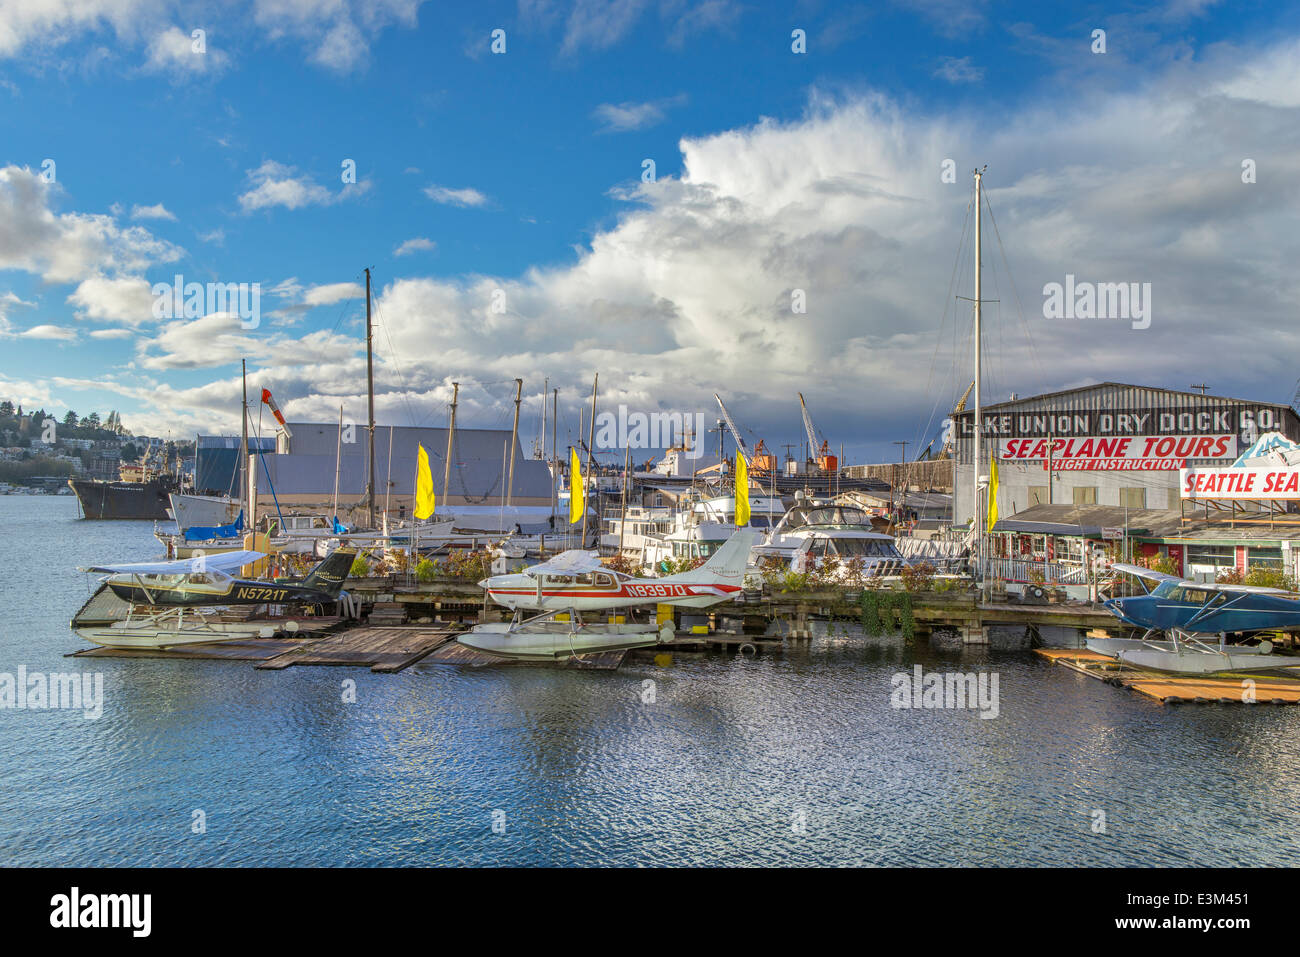 Seattle, Washington: Seaplanes moored on Lake Union along Eastlake Stock Photo